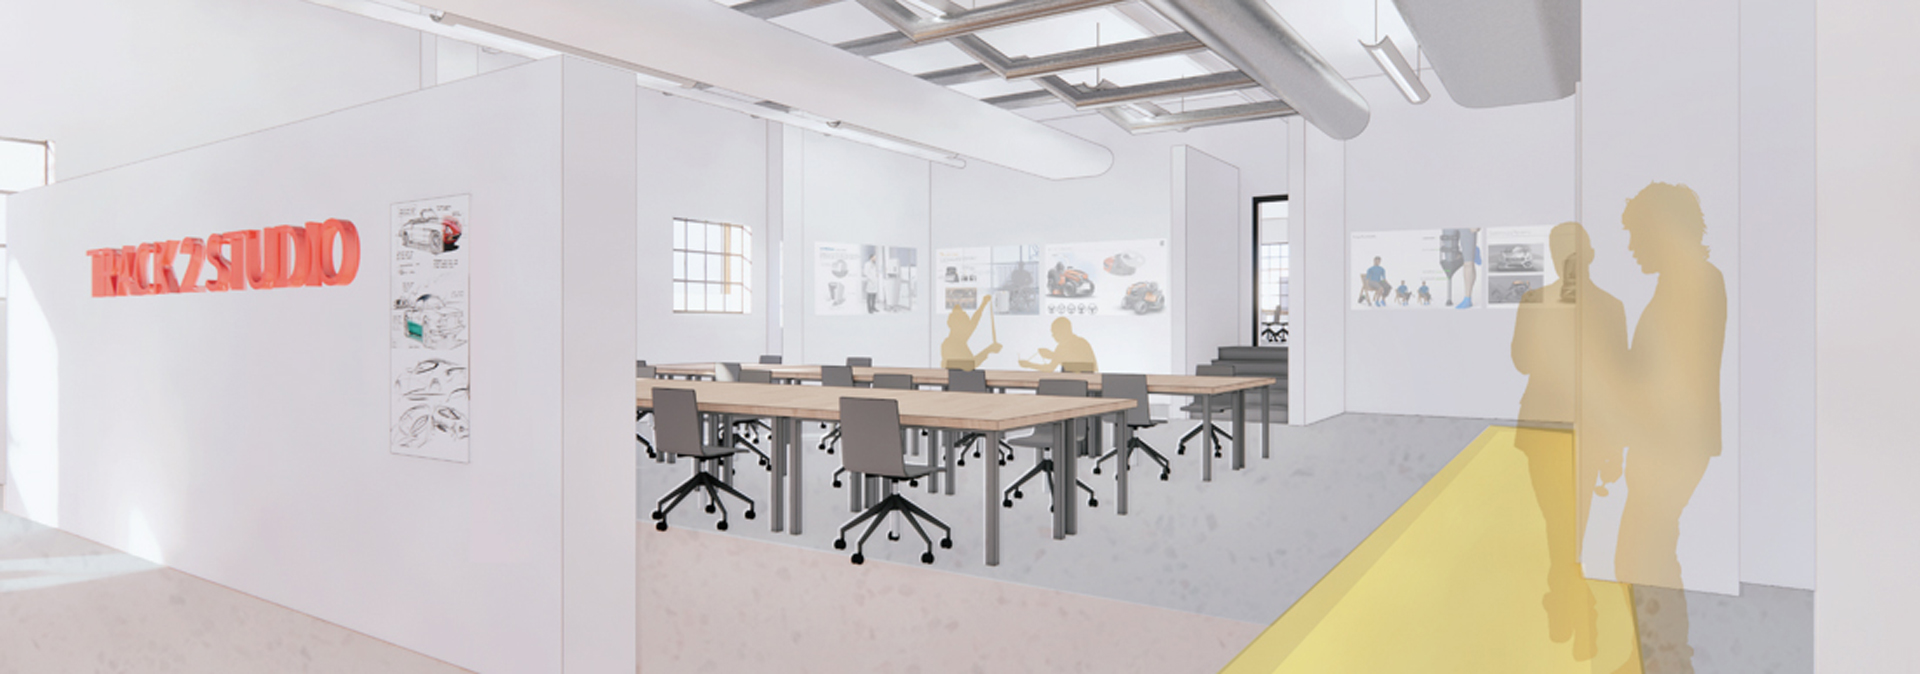 Finally, a Home: Industrial Design Program to Get Dedicated Space